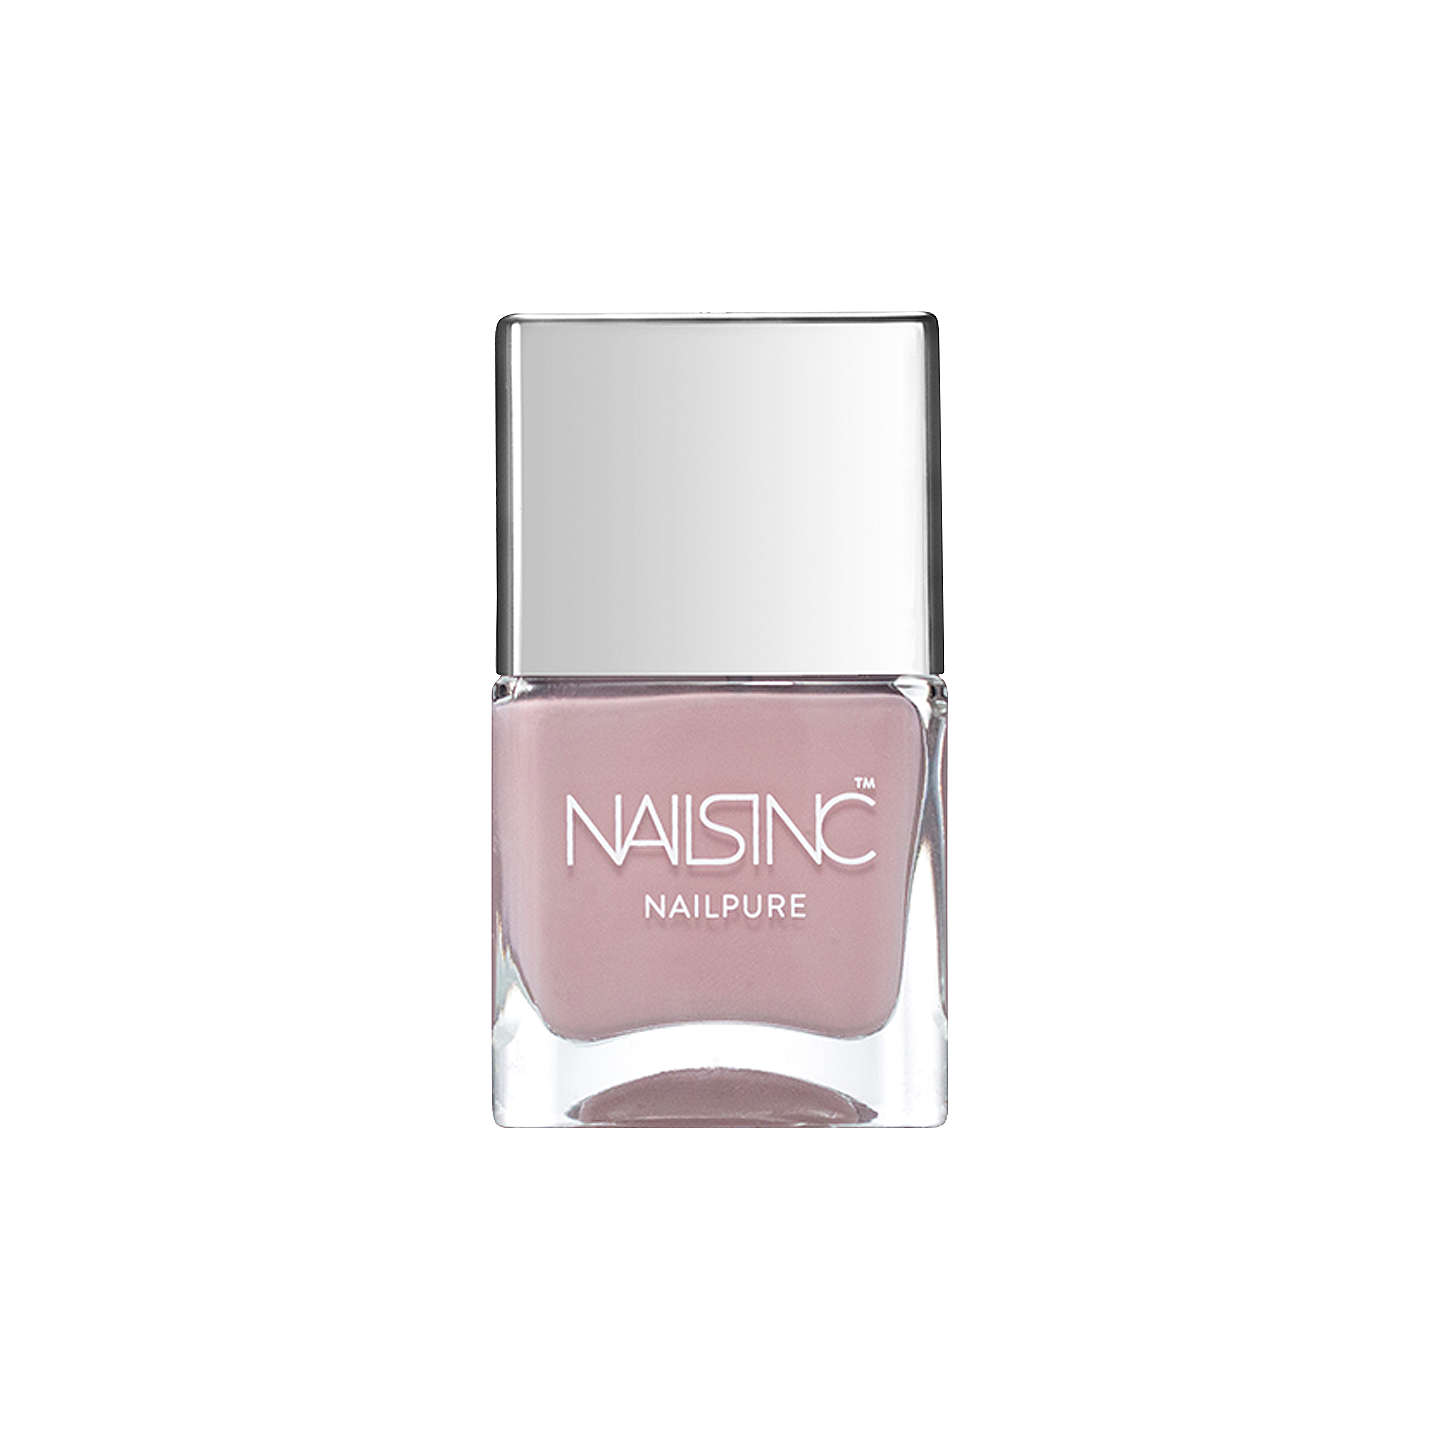 Nails Inc 6 Free Nailpure Nail Polish at John Lewis